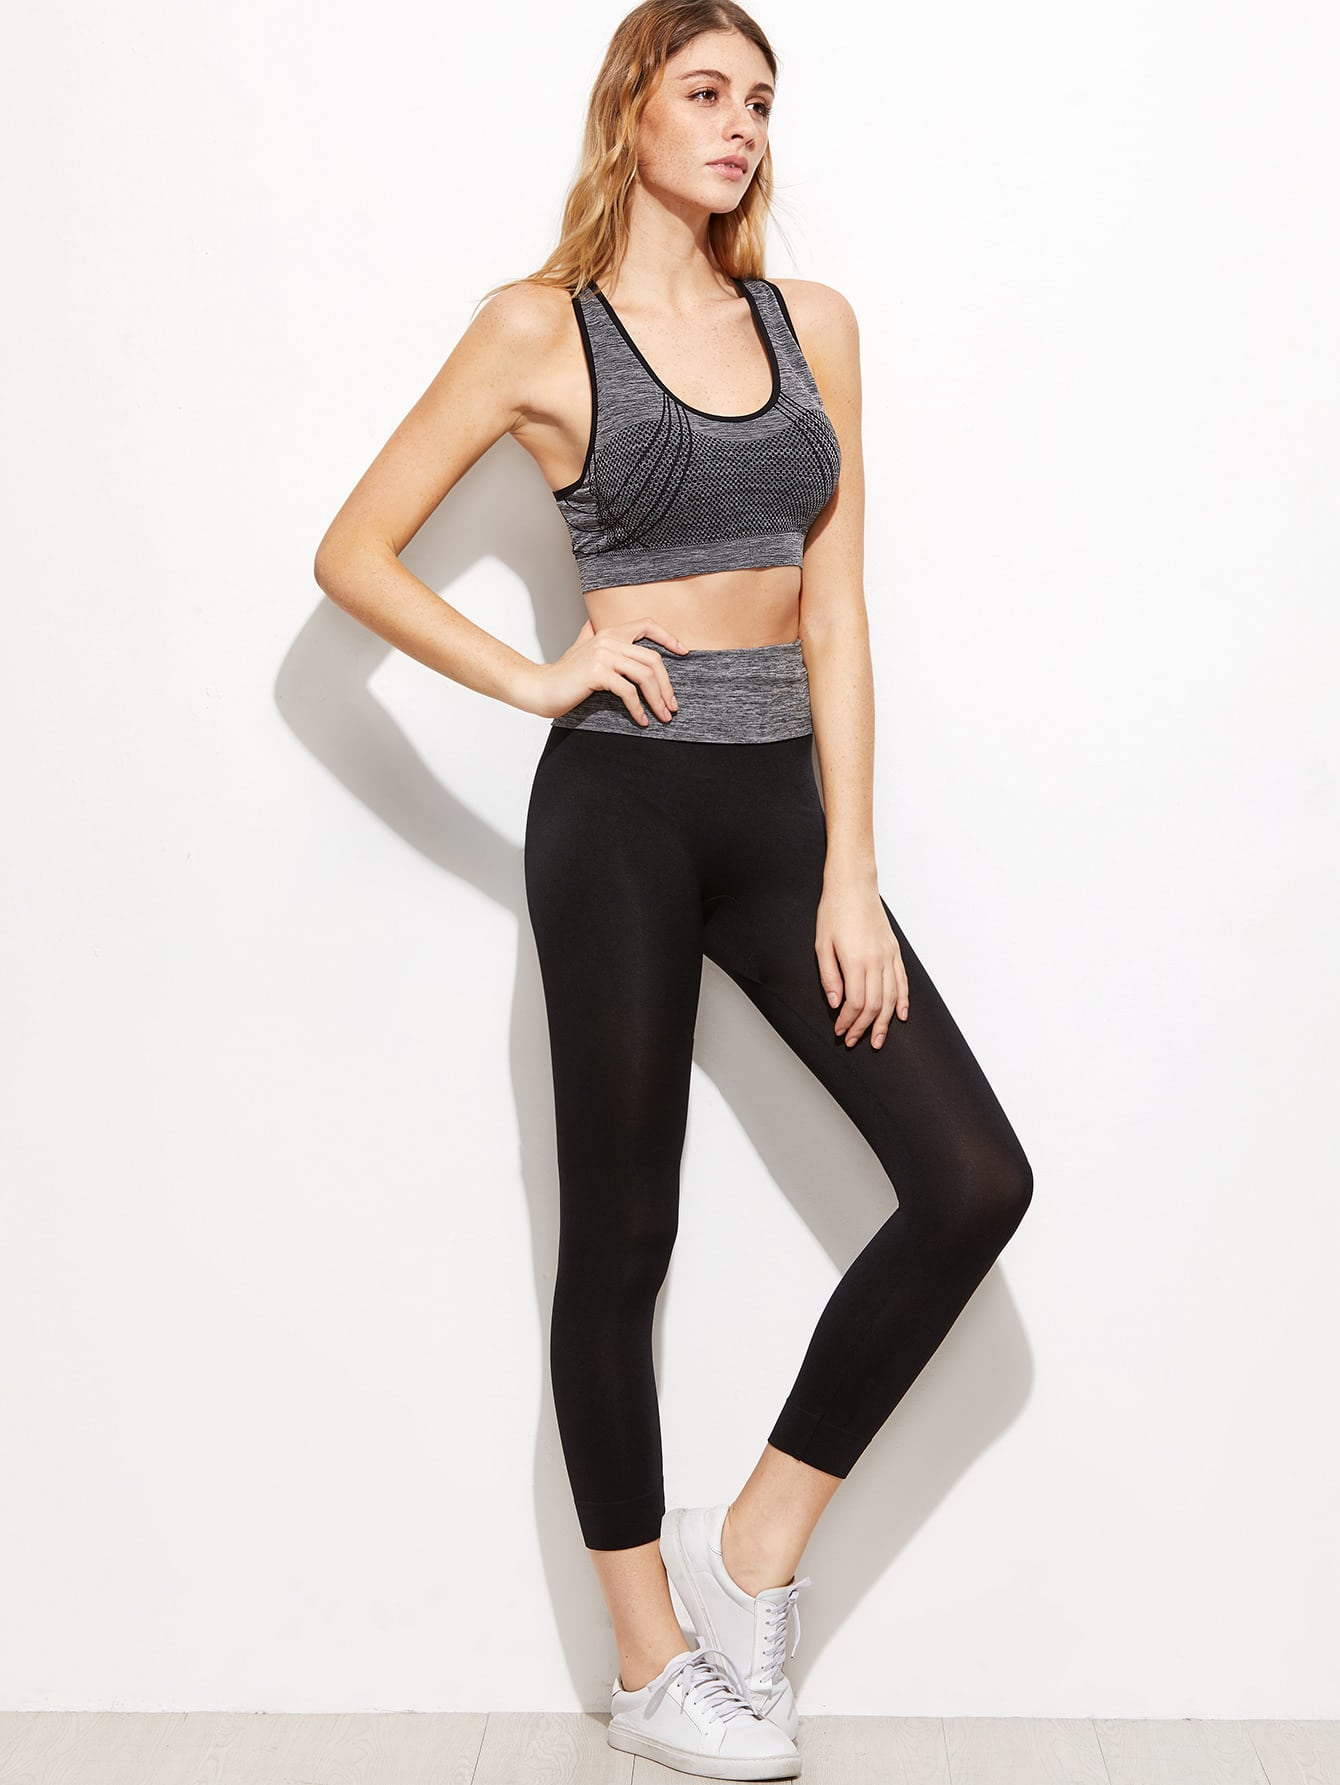 Grey Criss Cross Back Sport Tank Top With  LeggingsGrey Criss Cross Back Sport Tank Top With  Leggings<br><br>color: Grey<br>size: one-size